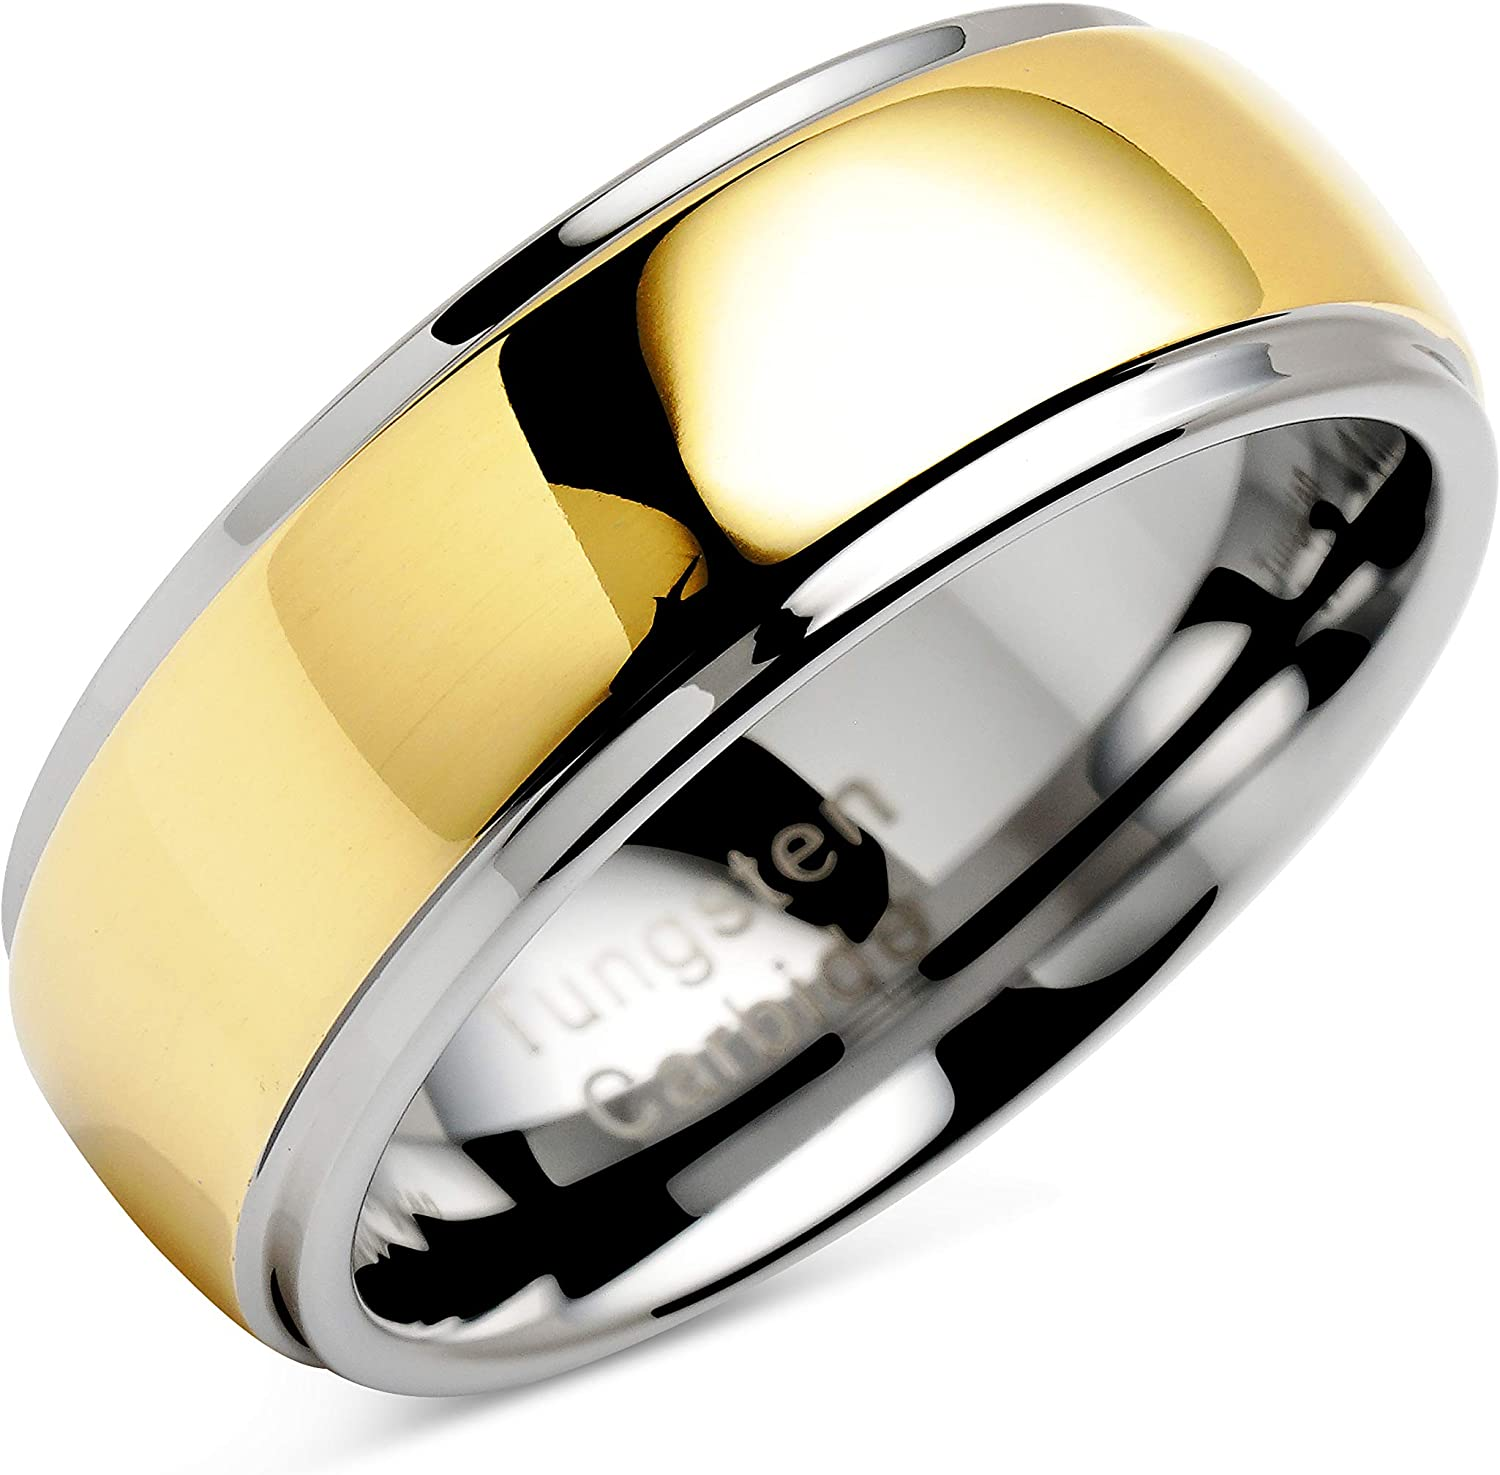 100S Ranking TOP9 Discount is also underway JEWELRY Engraved Personalized Tungsten Men Rings Women For